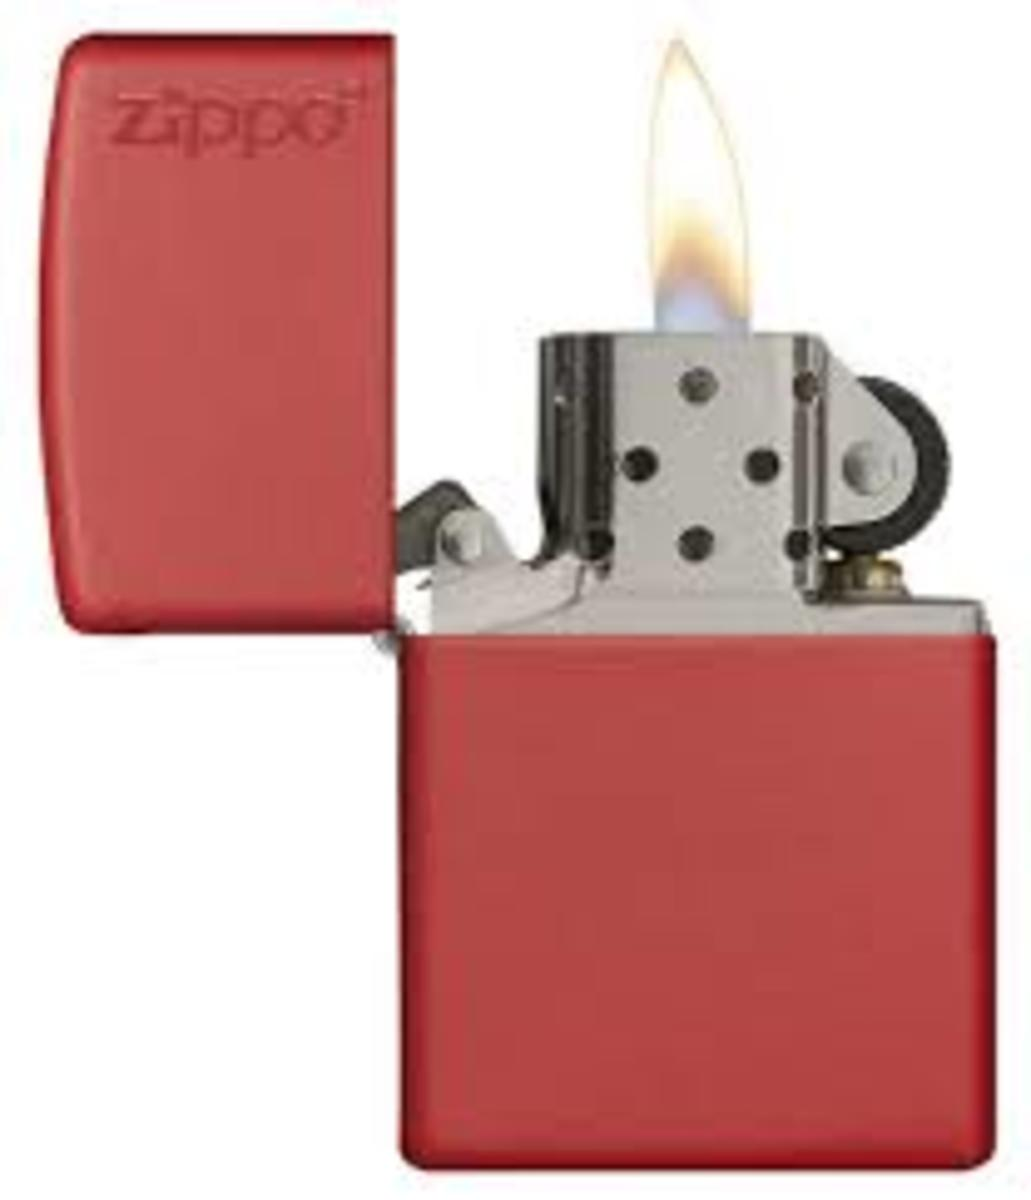 Zippo—When you're so cold you'd use anything to keep a bit warmer.